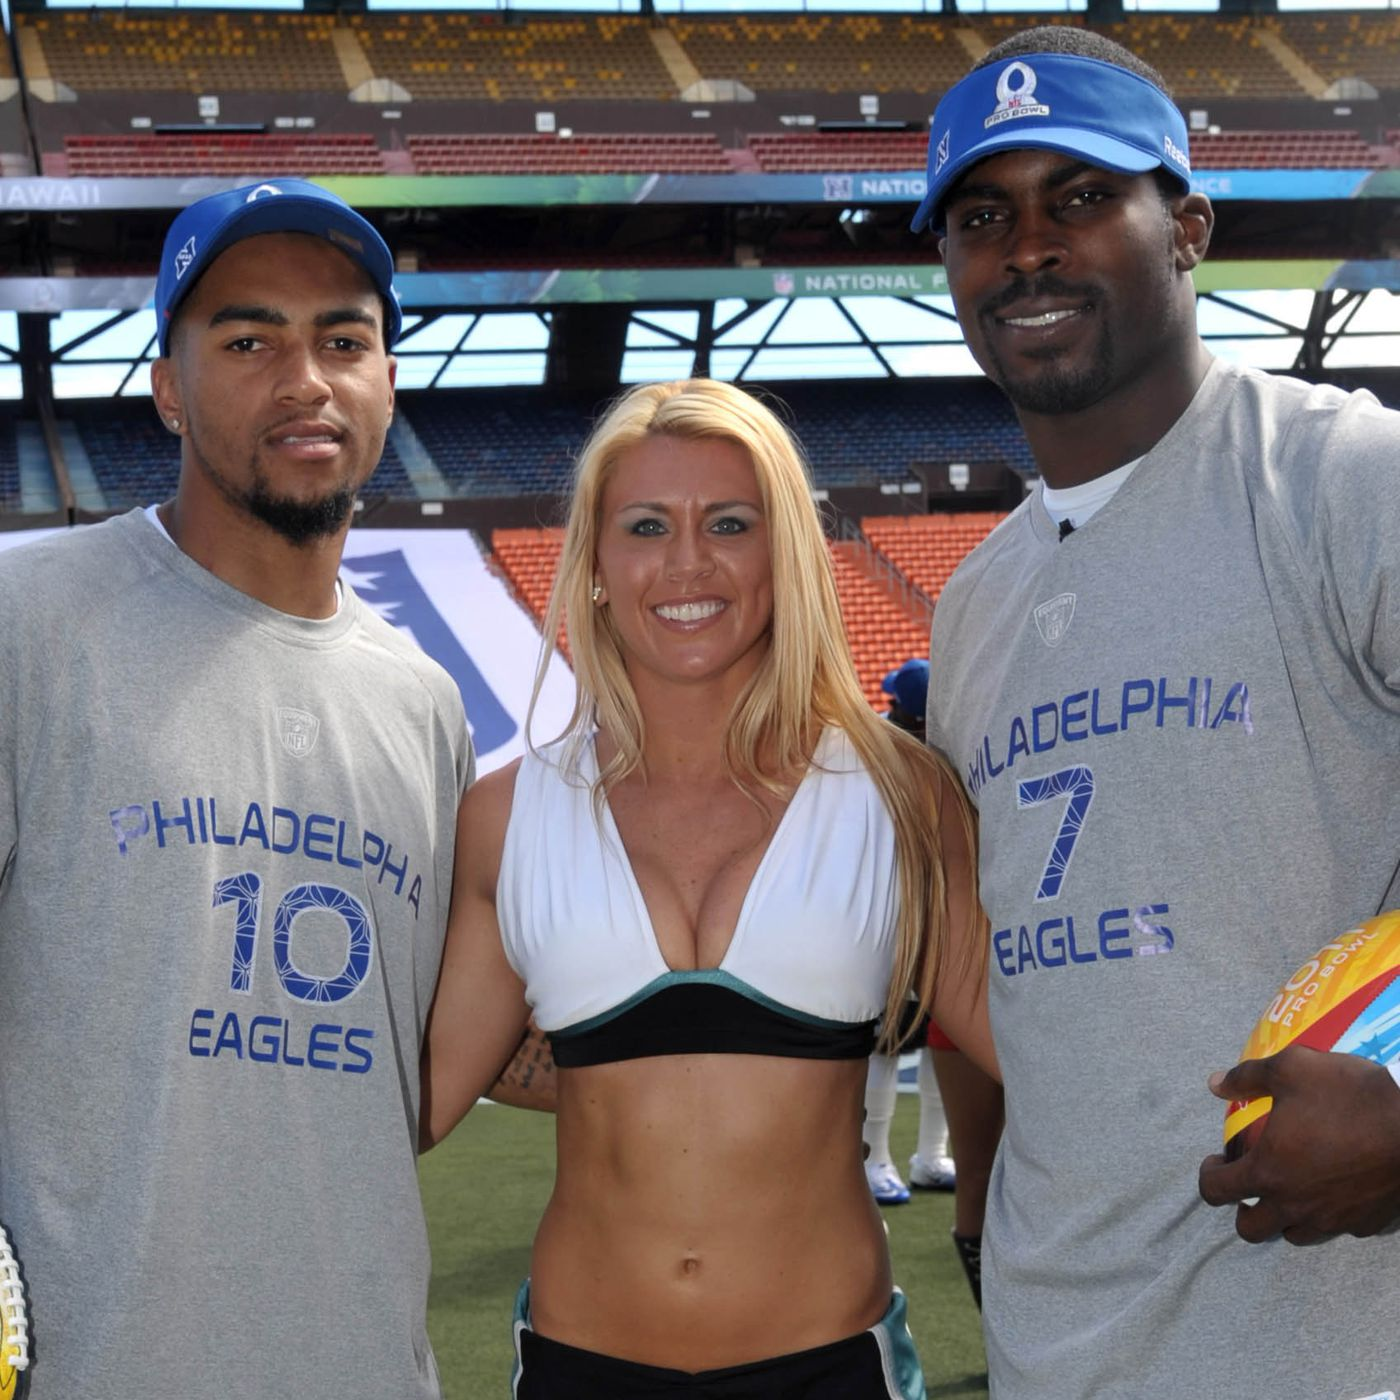 b3f1b9658 Michael Vick Wanted DeSean Jackson on the Jets  Calls Playing for Redskins  a Dream Come True